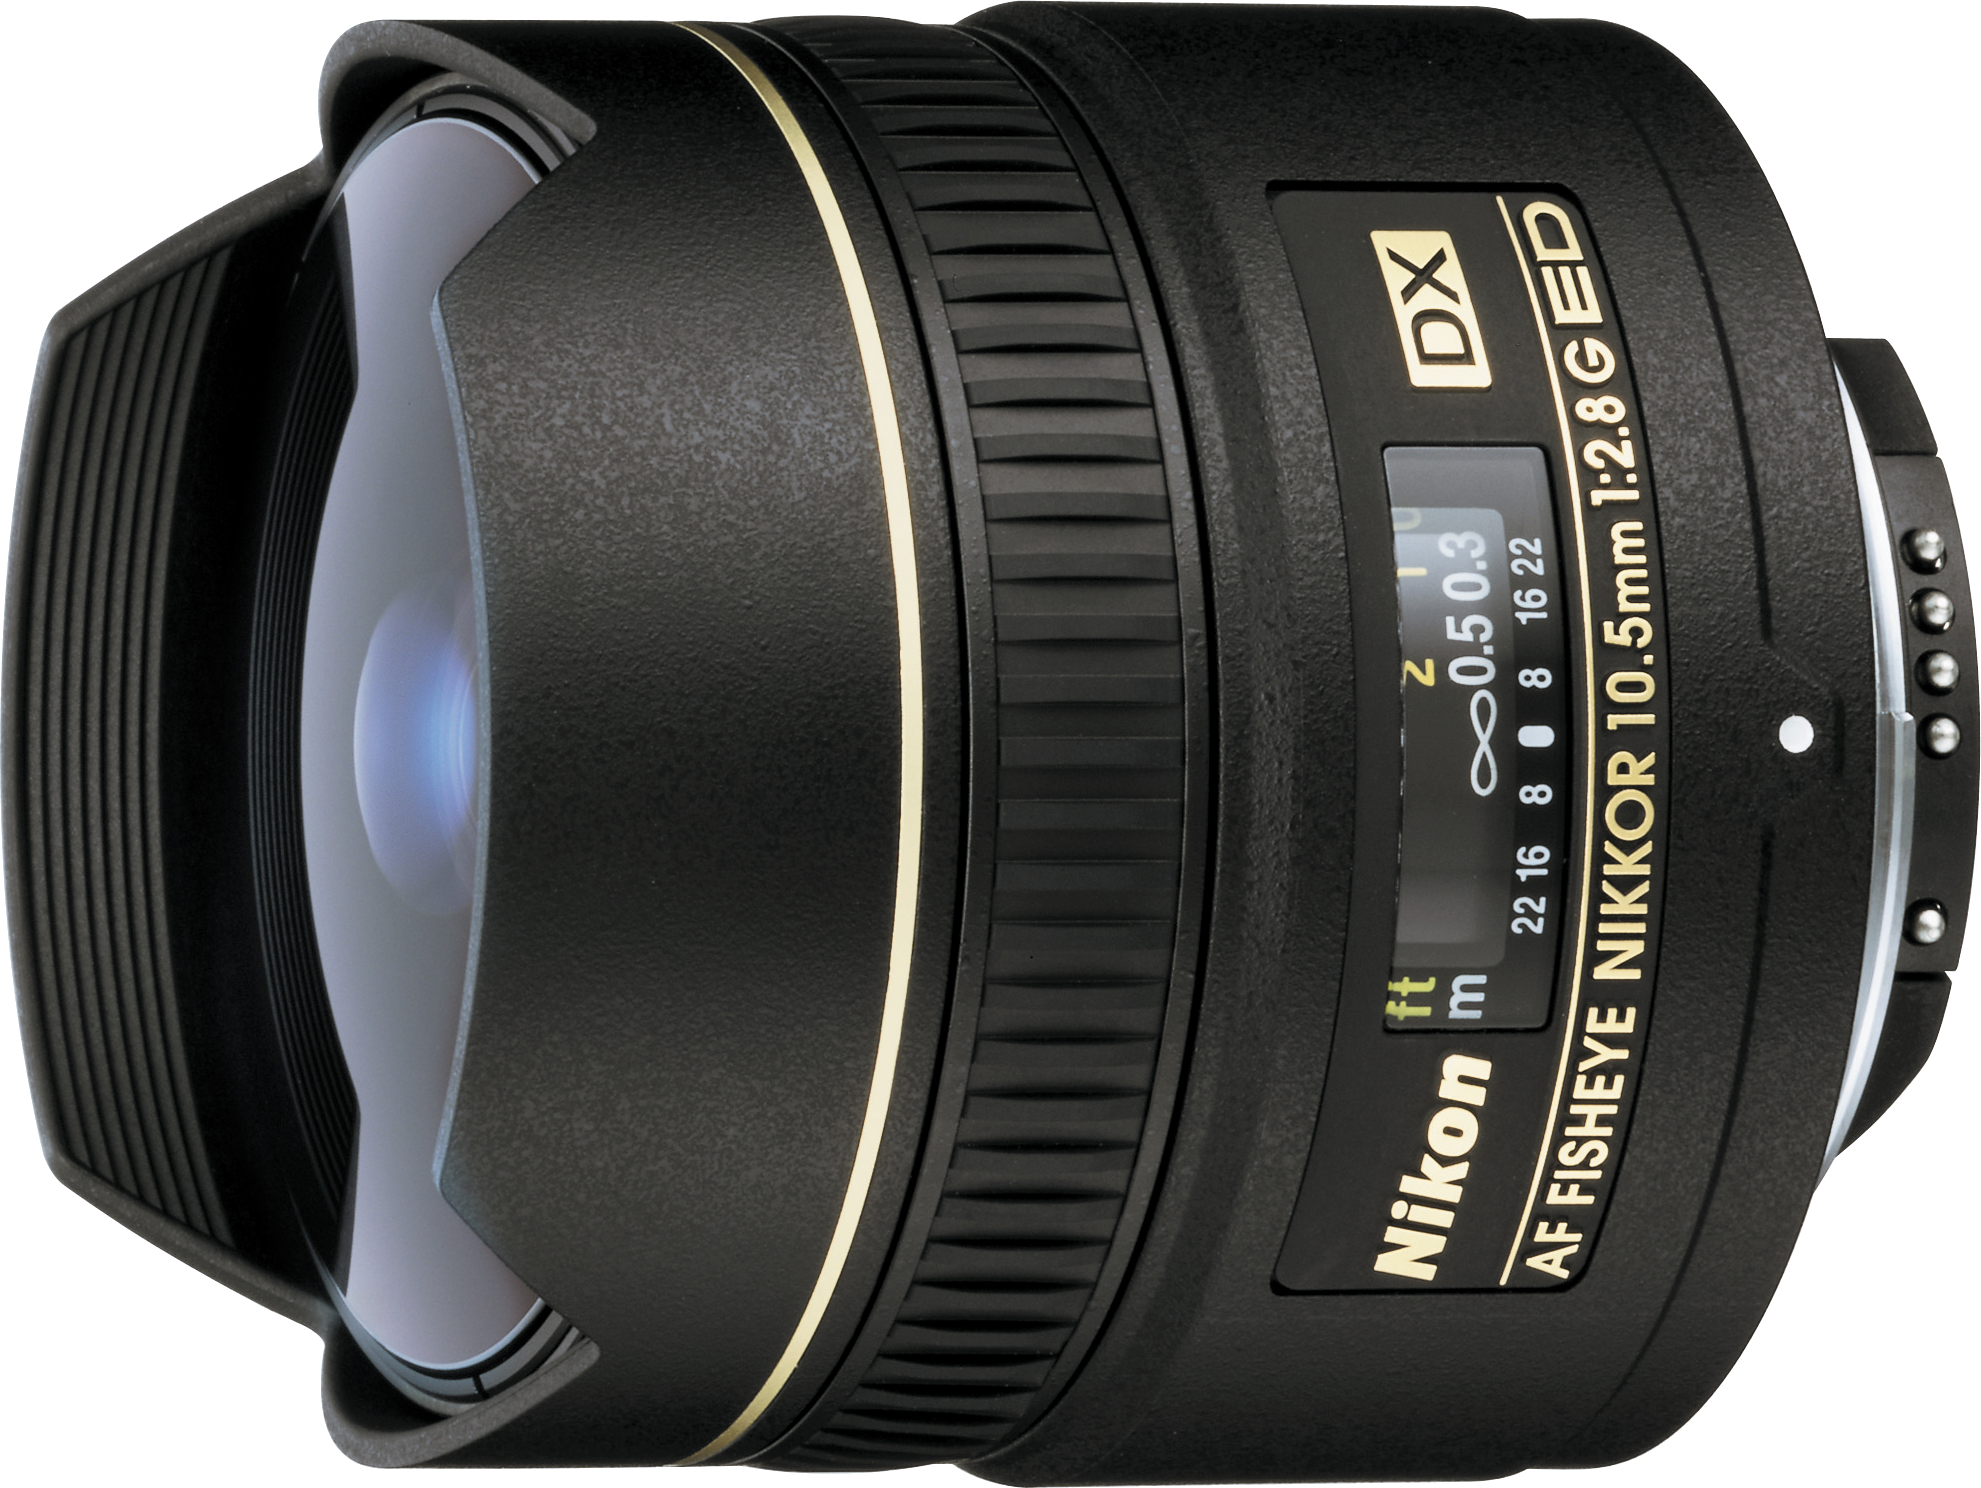 Fisheye lens from Nikon for very wide angle photography.  Designed for crop sensor cameras but will fit full frame cameras in DX crop mode.